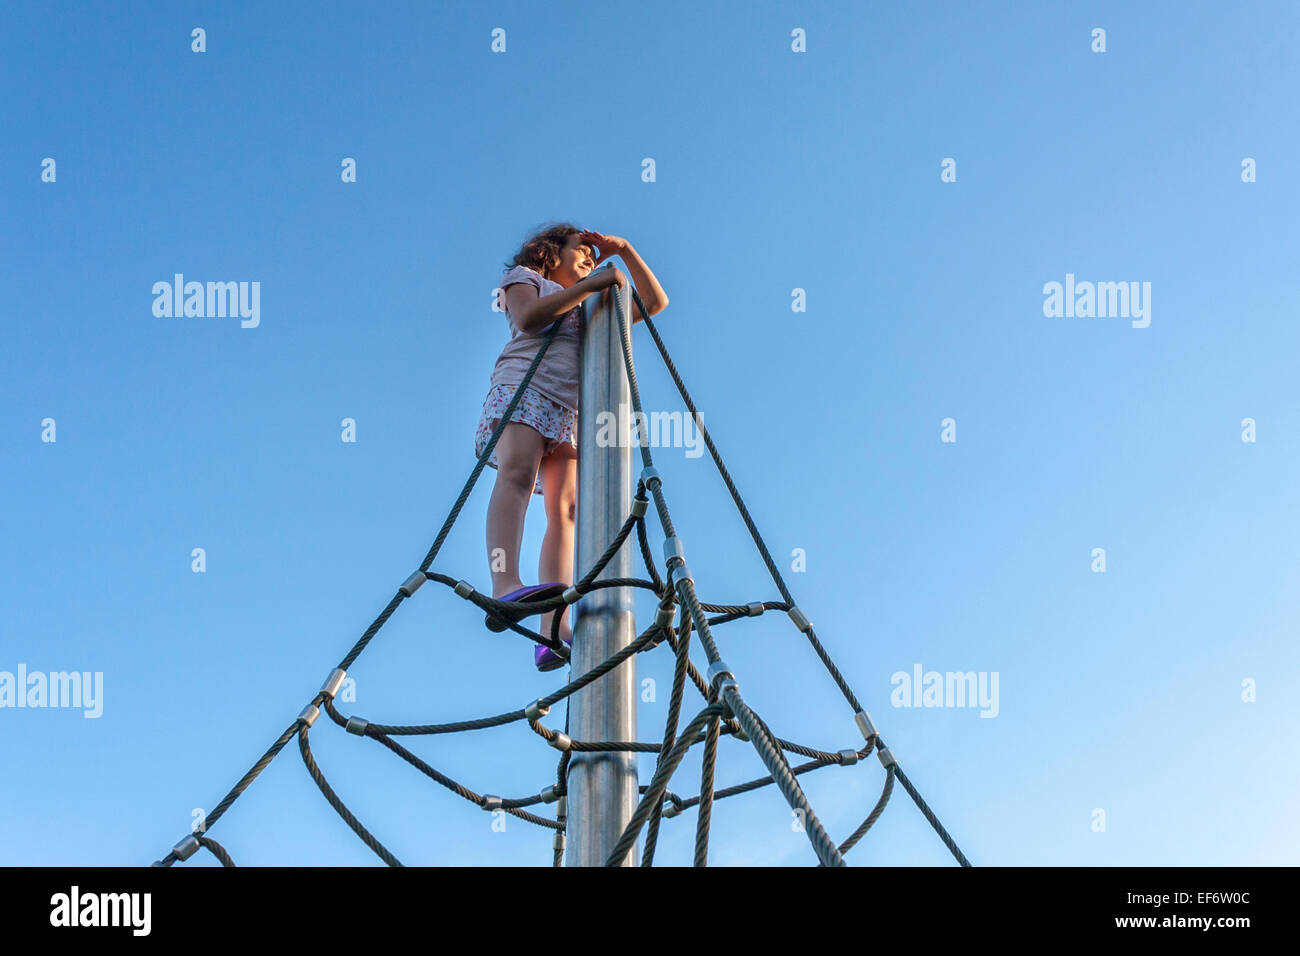 Confident nine year old girl on top of a climbing frame. - Stock Image